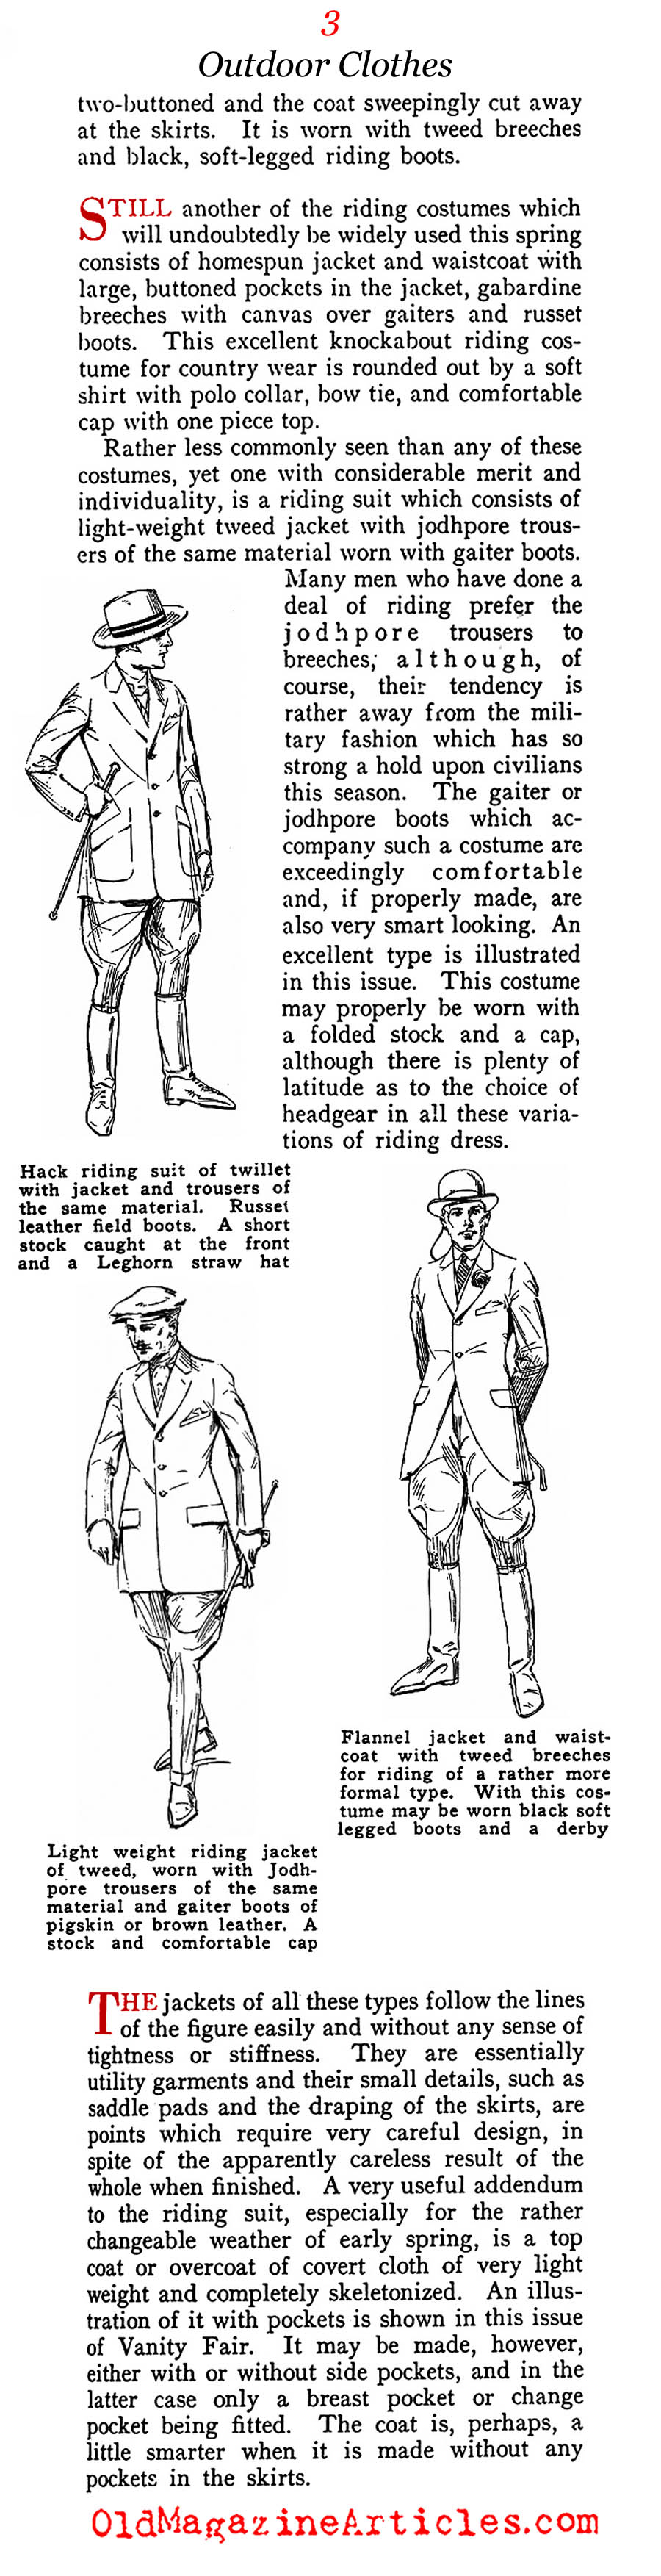 Man and Horse and Equestrian Clothing (Vanity Fair Magazine, 1918)